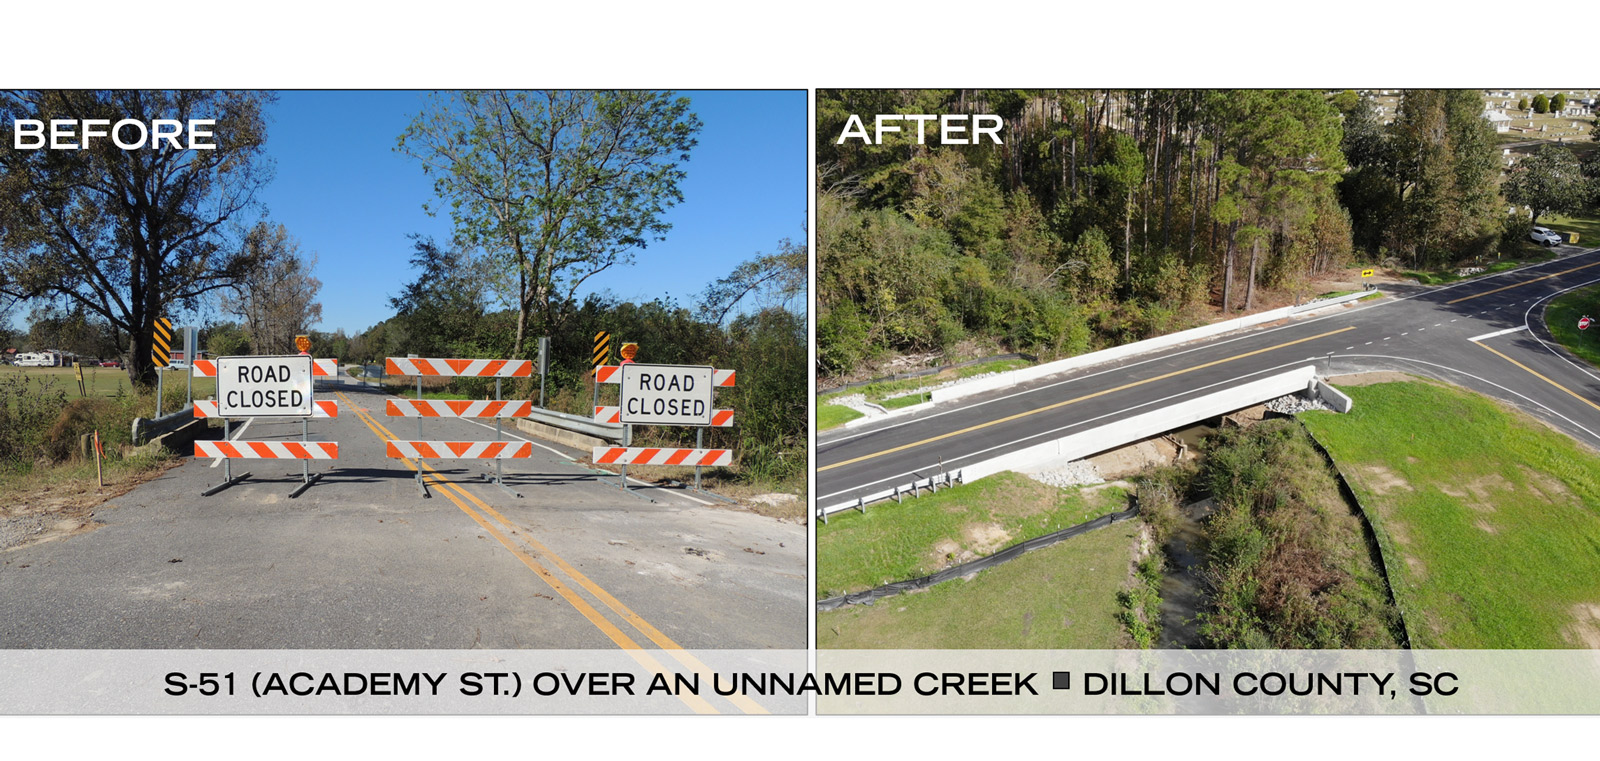 EMERGENCY BRIDGE PACKAGE 2018 2-A SCDOT S-51 DILLON COUNTY, SC